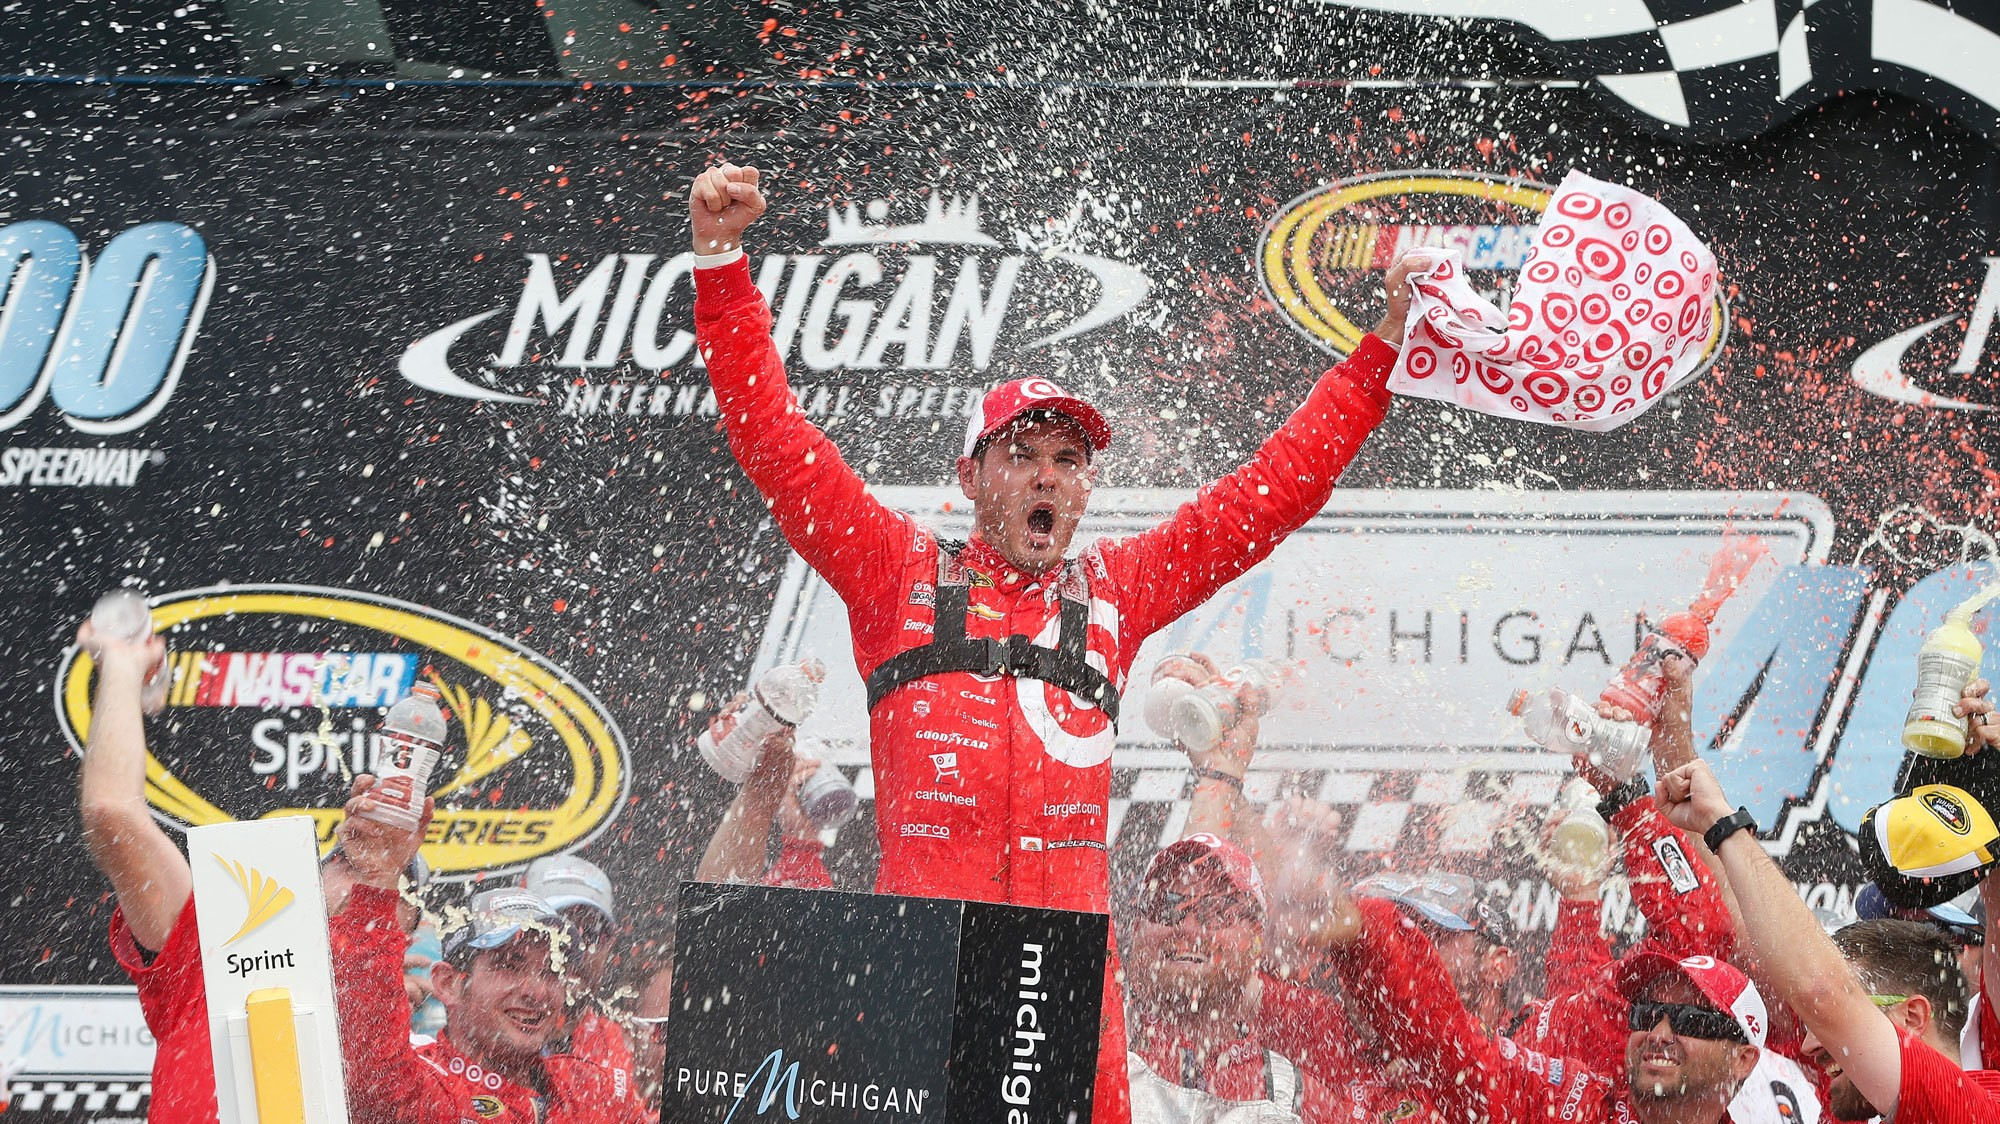 Kyle Larson Becomes First NASCAR Diversity Grad to Win Sprint Cup Series